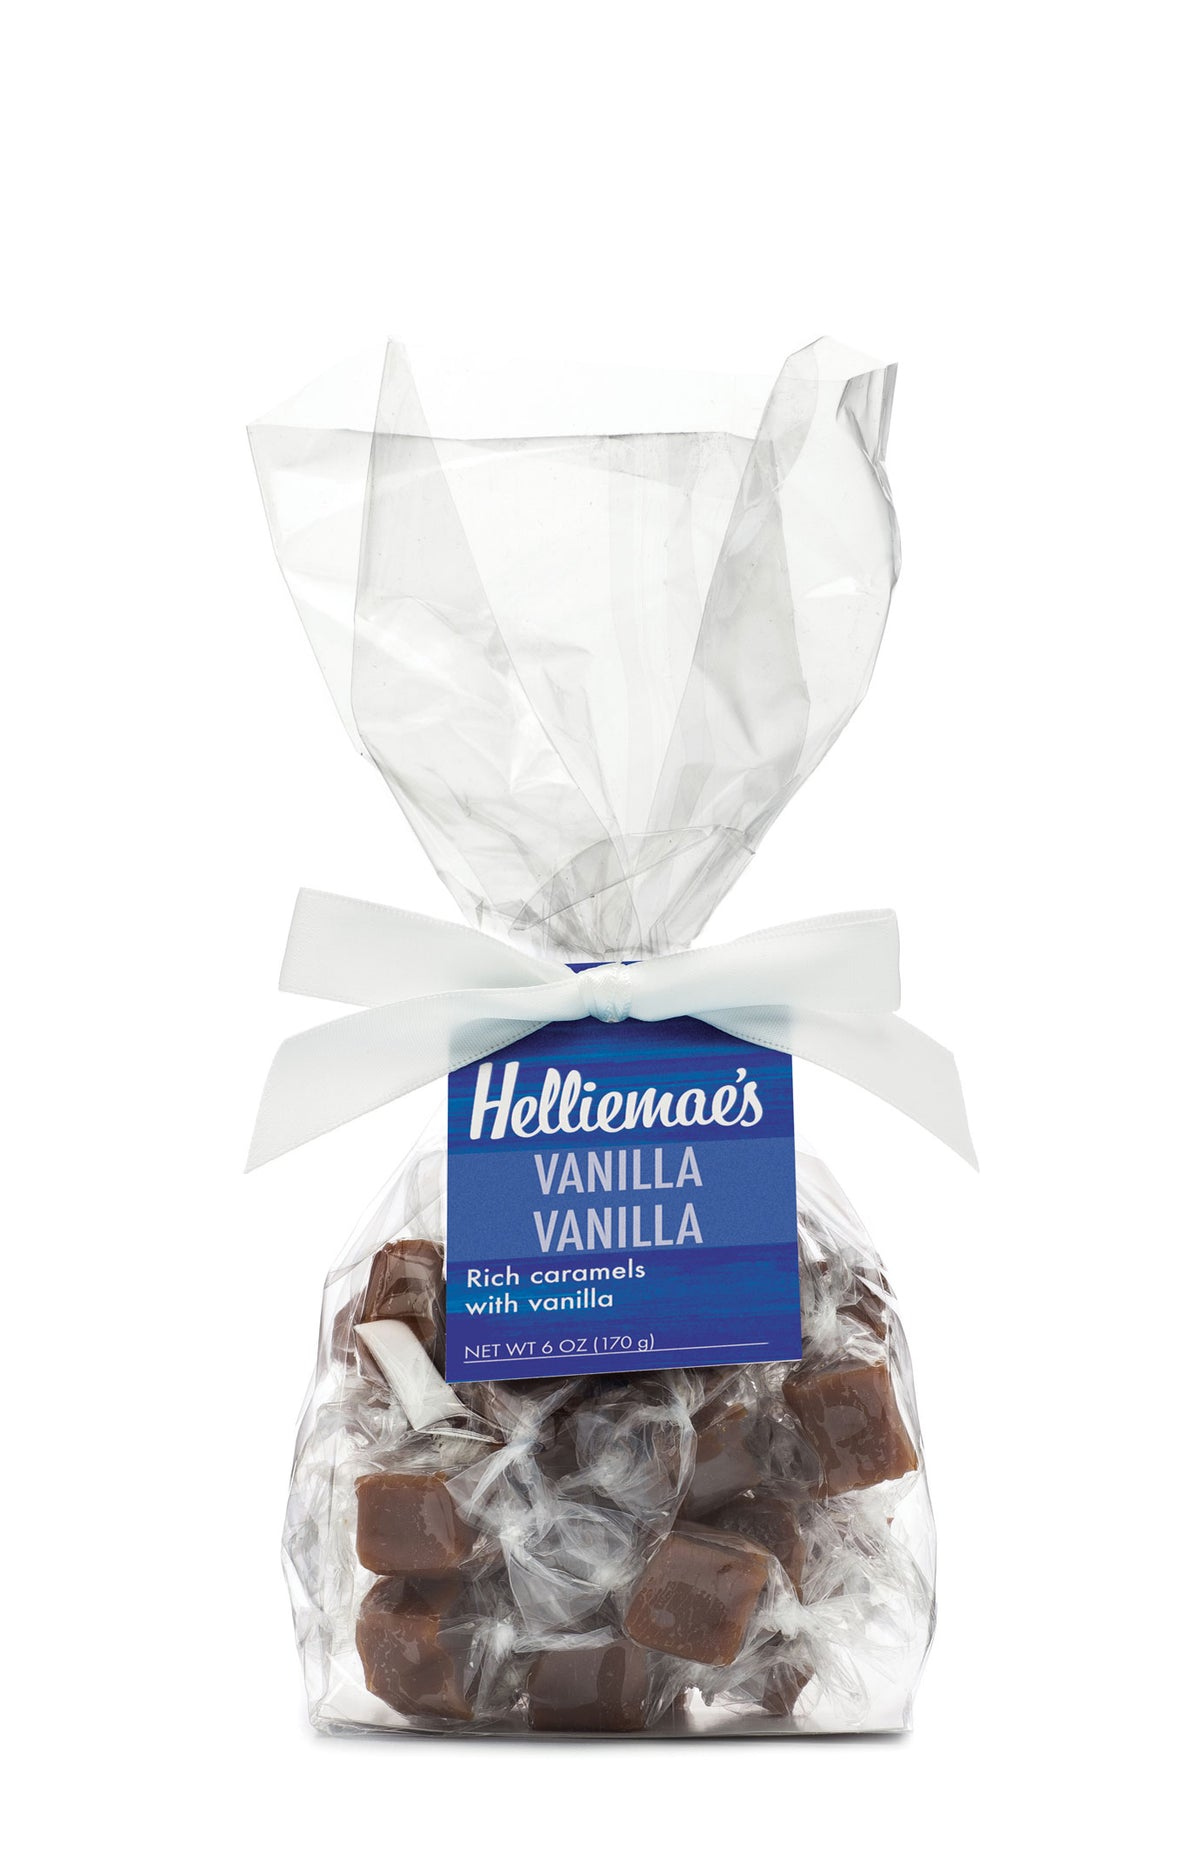 Helliemae's Vanilla Vanilla Caramels medium gift bag, clear cello bag with gathered top, fastened with white satin ribbon and colorful blue hangtag, with effect of milk paint on a barn wall.